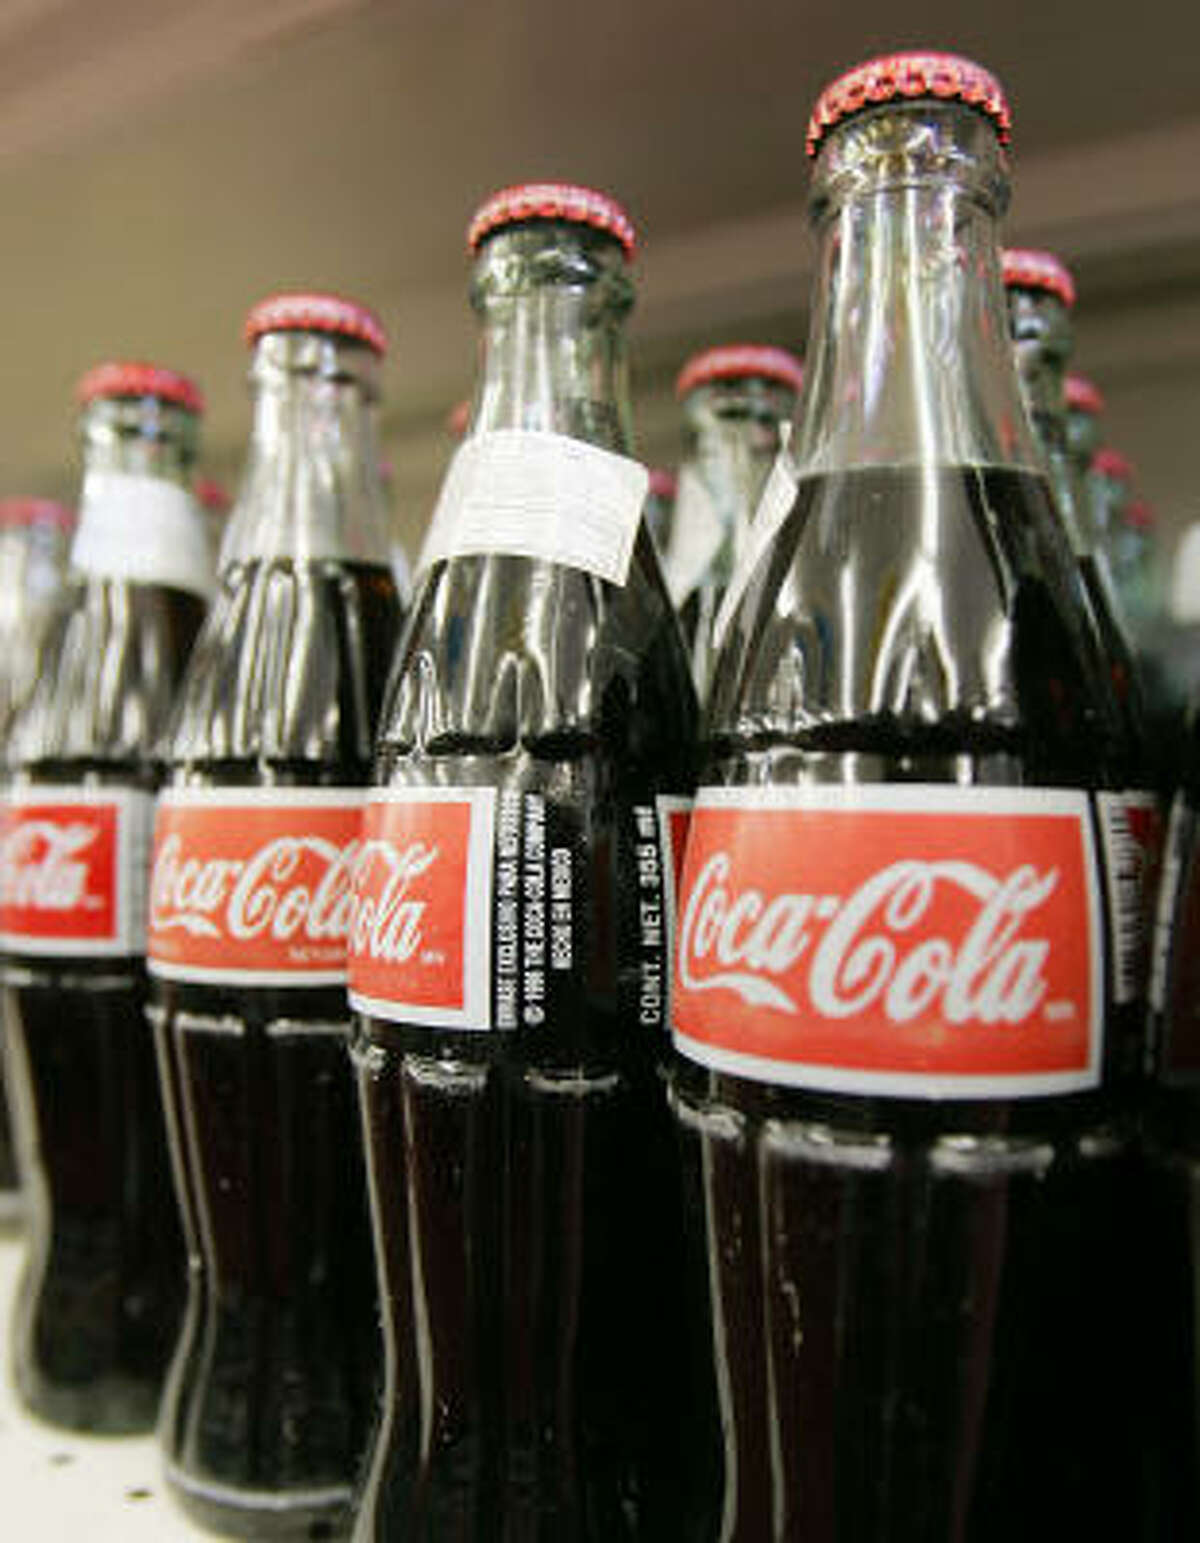 Cane sugar used to sweeten Mexican Coca-Cola is more expensive than HFCS.